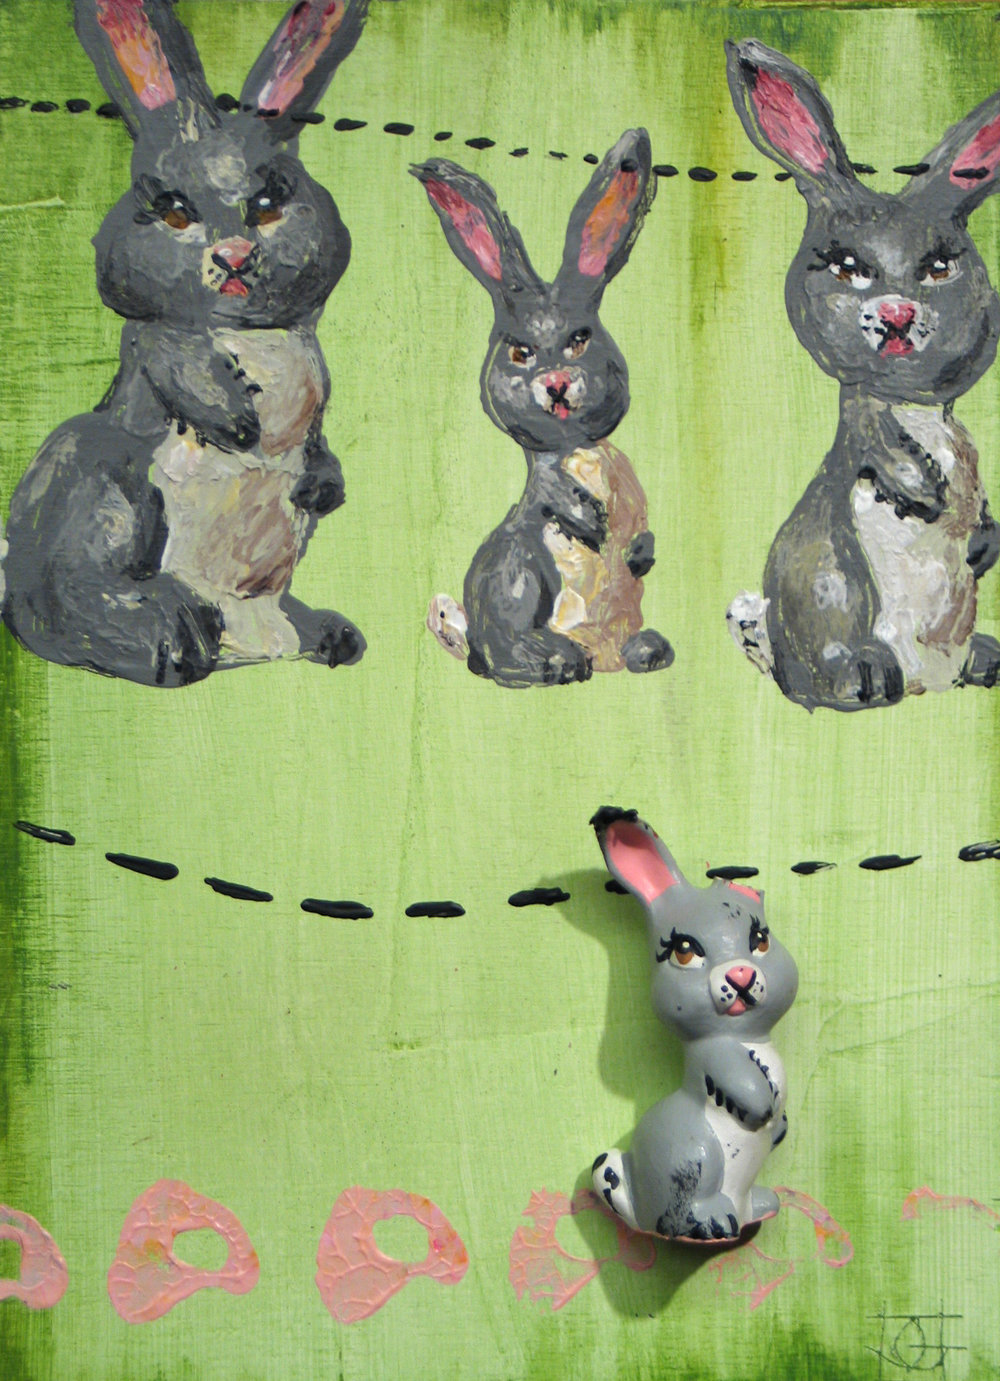 From the series: Objects that Paint Themselves. (Used the bunny instead of a brush.)